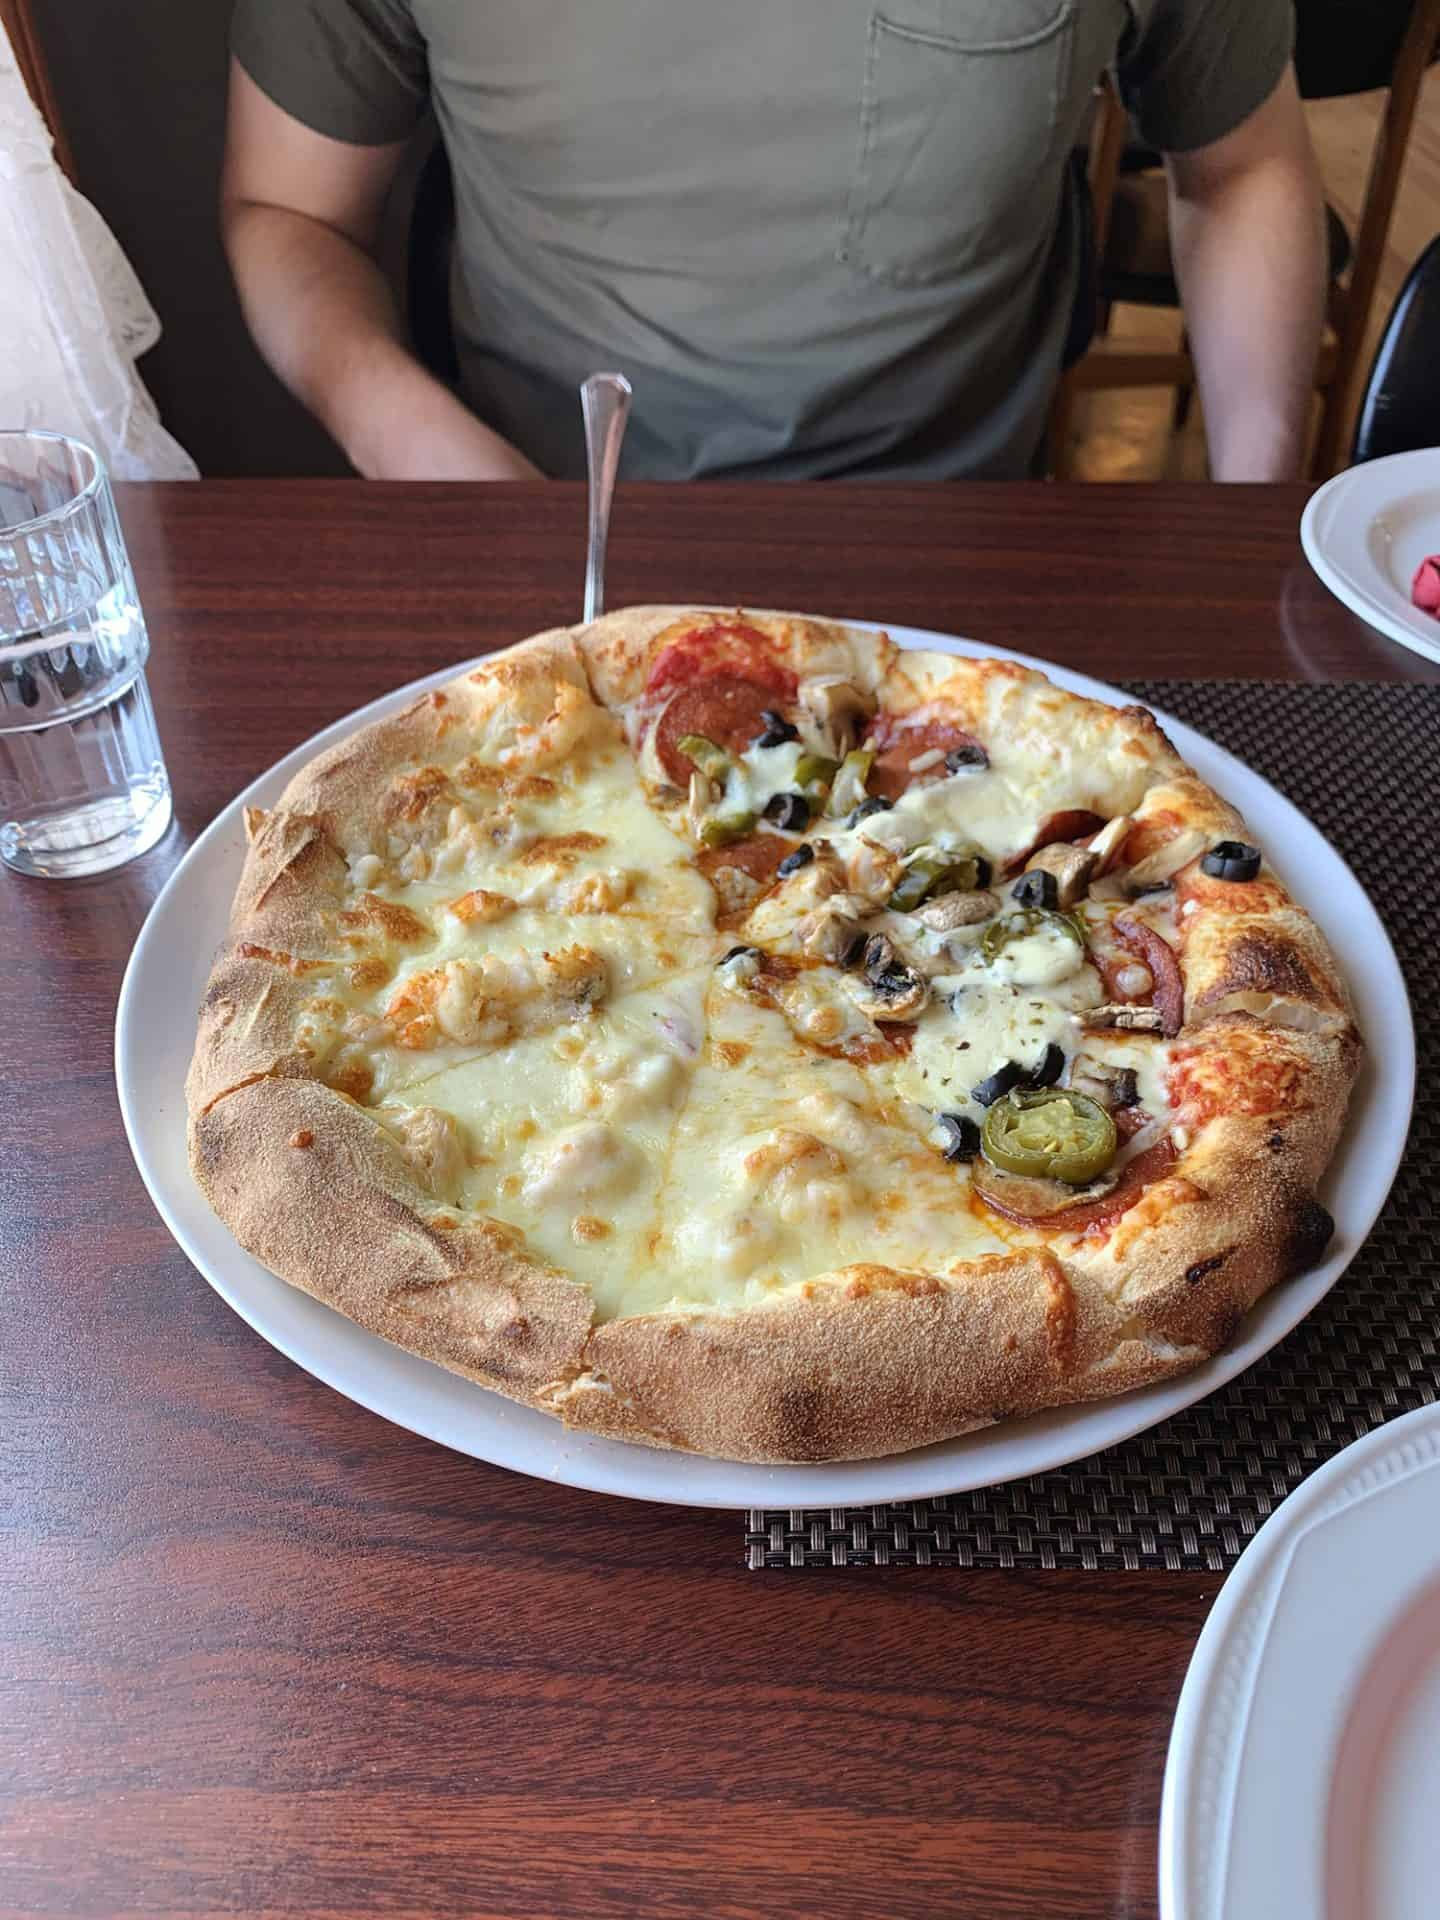 Café Riis Restaurant & Pizzeria serves up some of the best pizza in the Westfjords of Iceland